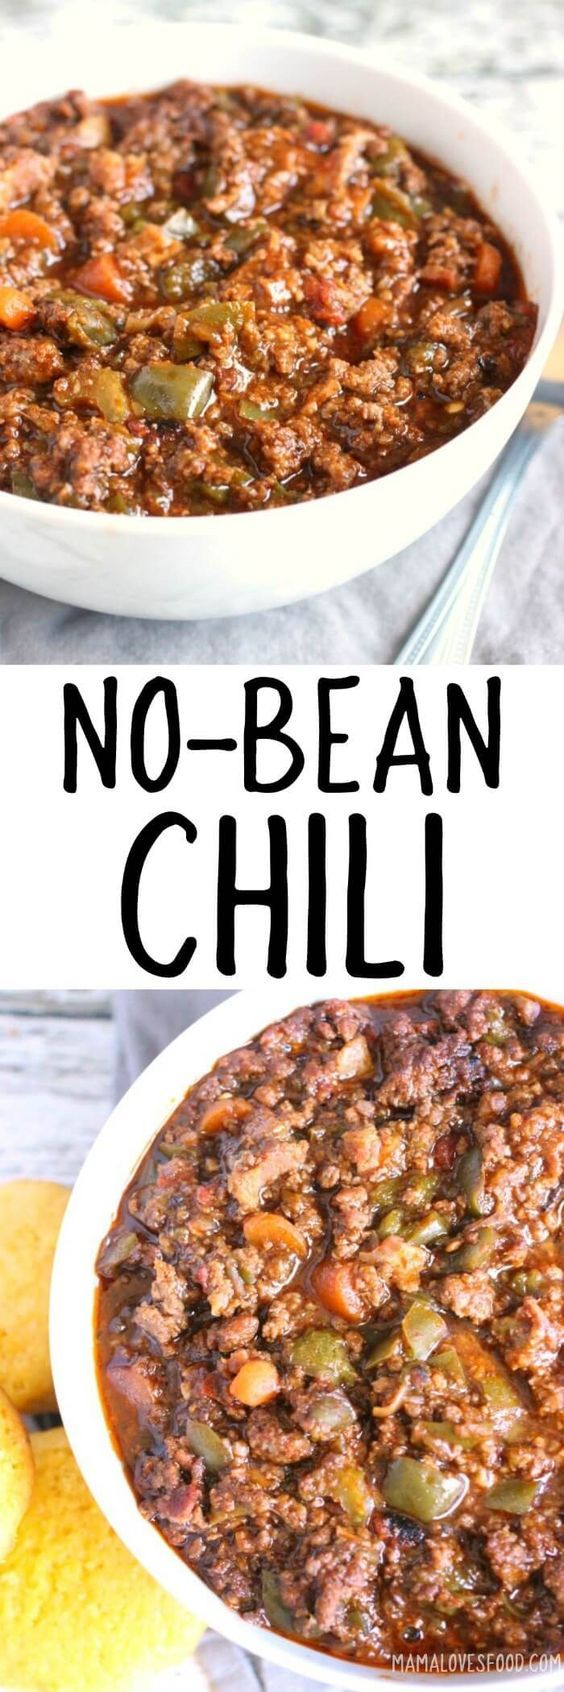 No Bean Chili Ground Beef Might Sub Chicken Turkey Mild Ground Pork Sausage Sub Chicken Turkey Vegetarian Sausage With Images Recipes Chilli Recipes No Bean Chili